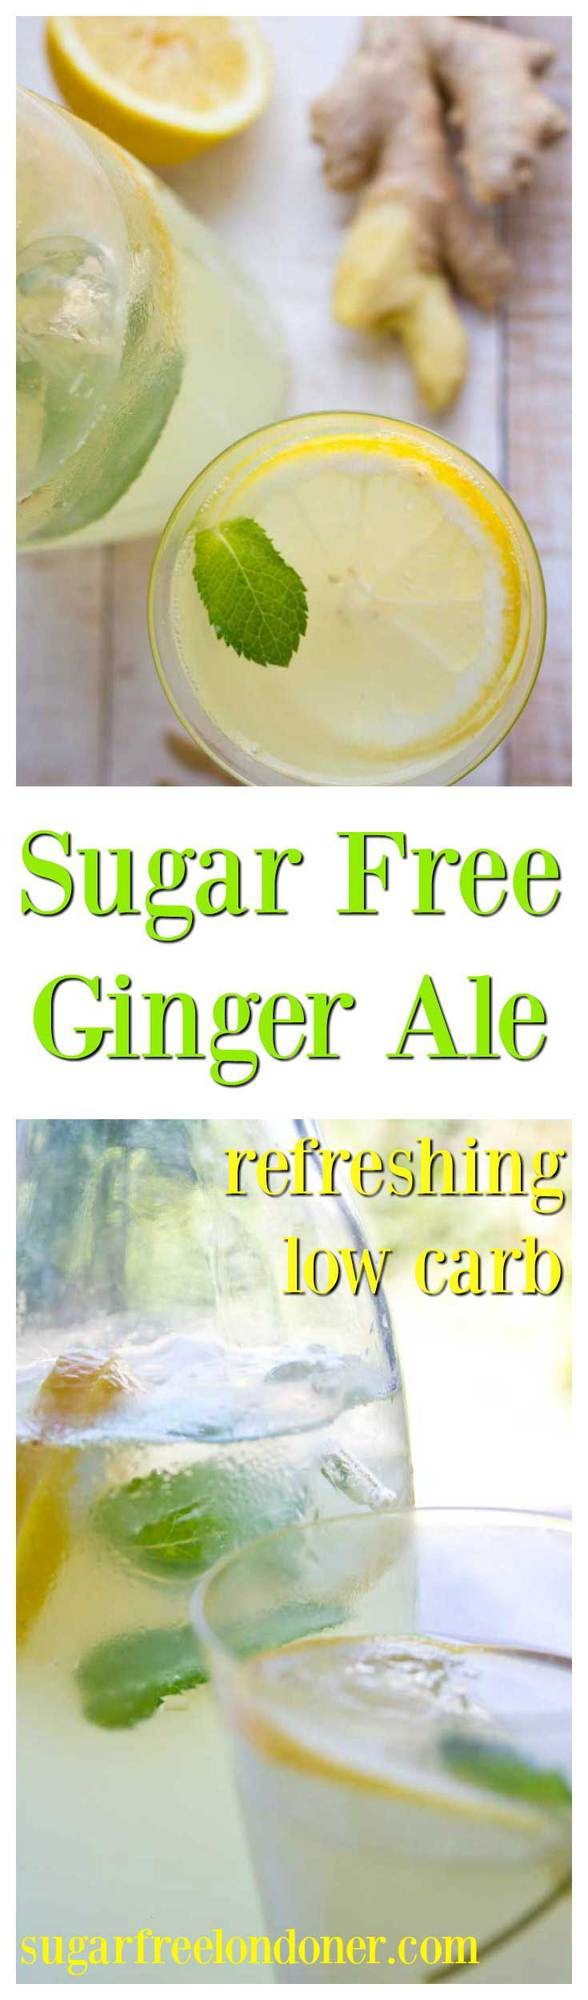 Sugar Free Homemade Ginger Ale will make your taste buds do the happy dance. An easy and refreshing low carb drink that uses fresh ginger! #gingerale #sugarfree